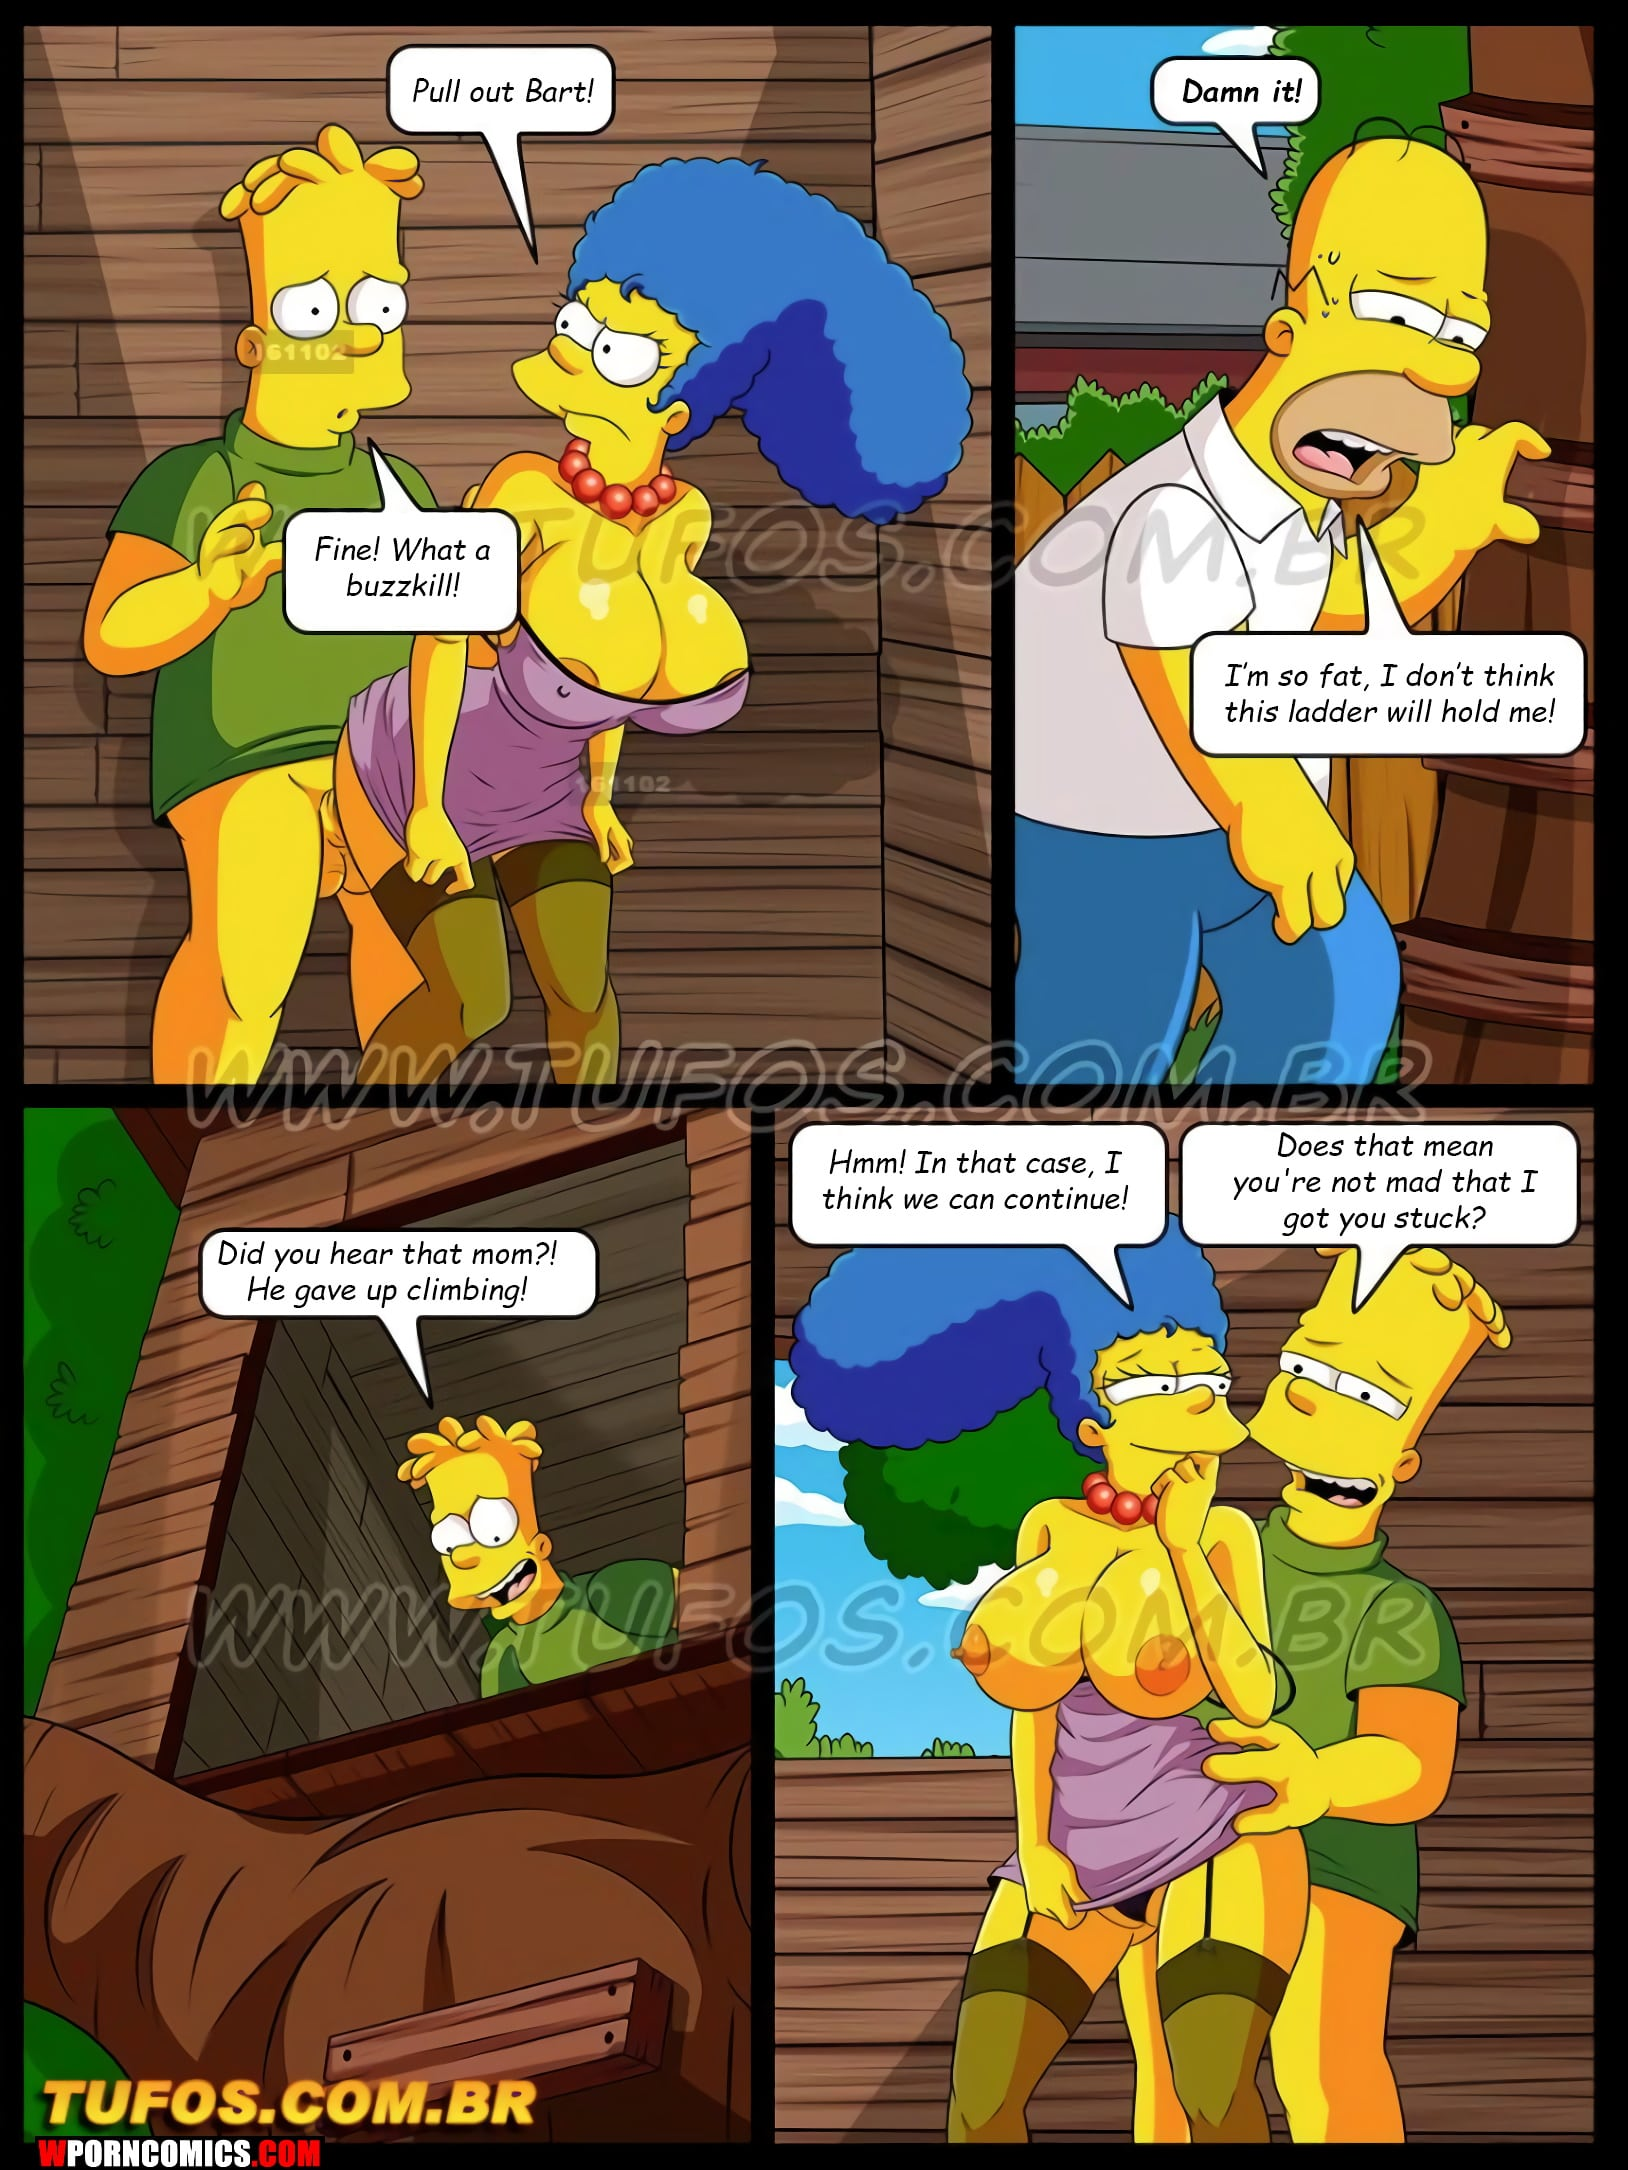 porn-comic-simpsons-part-12-fucking-in-the-treehouse-2020-03-19/porn-comic-simpsons-part-12-fucking-in-the-treehouse-2020-03-19-26941.jpg